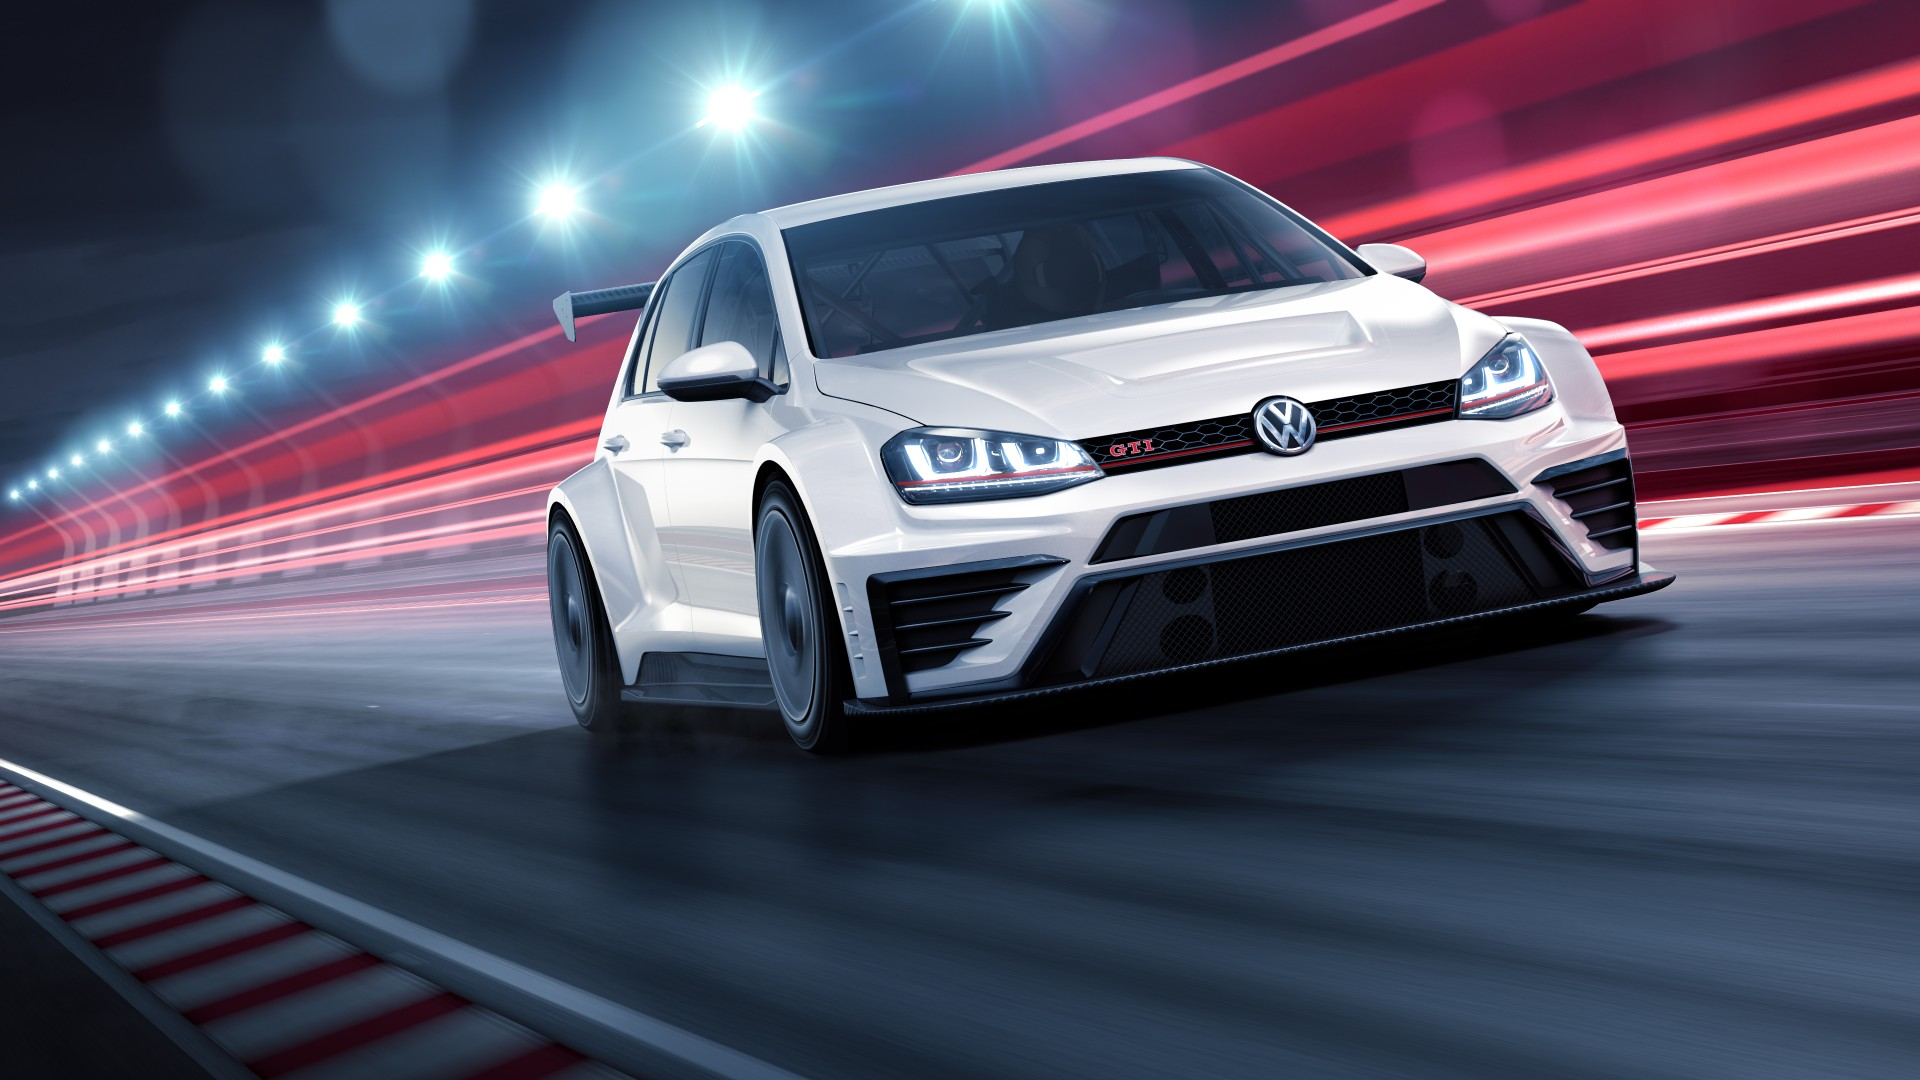 New Golf R >> Wallpaper Volkswagen Golf GTI TCR, racecar, white, Cars ...